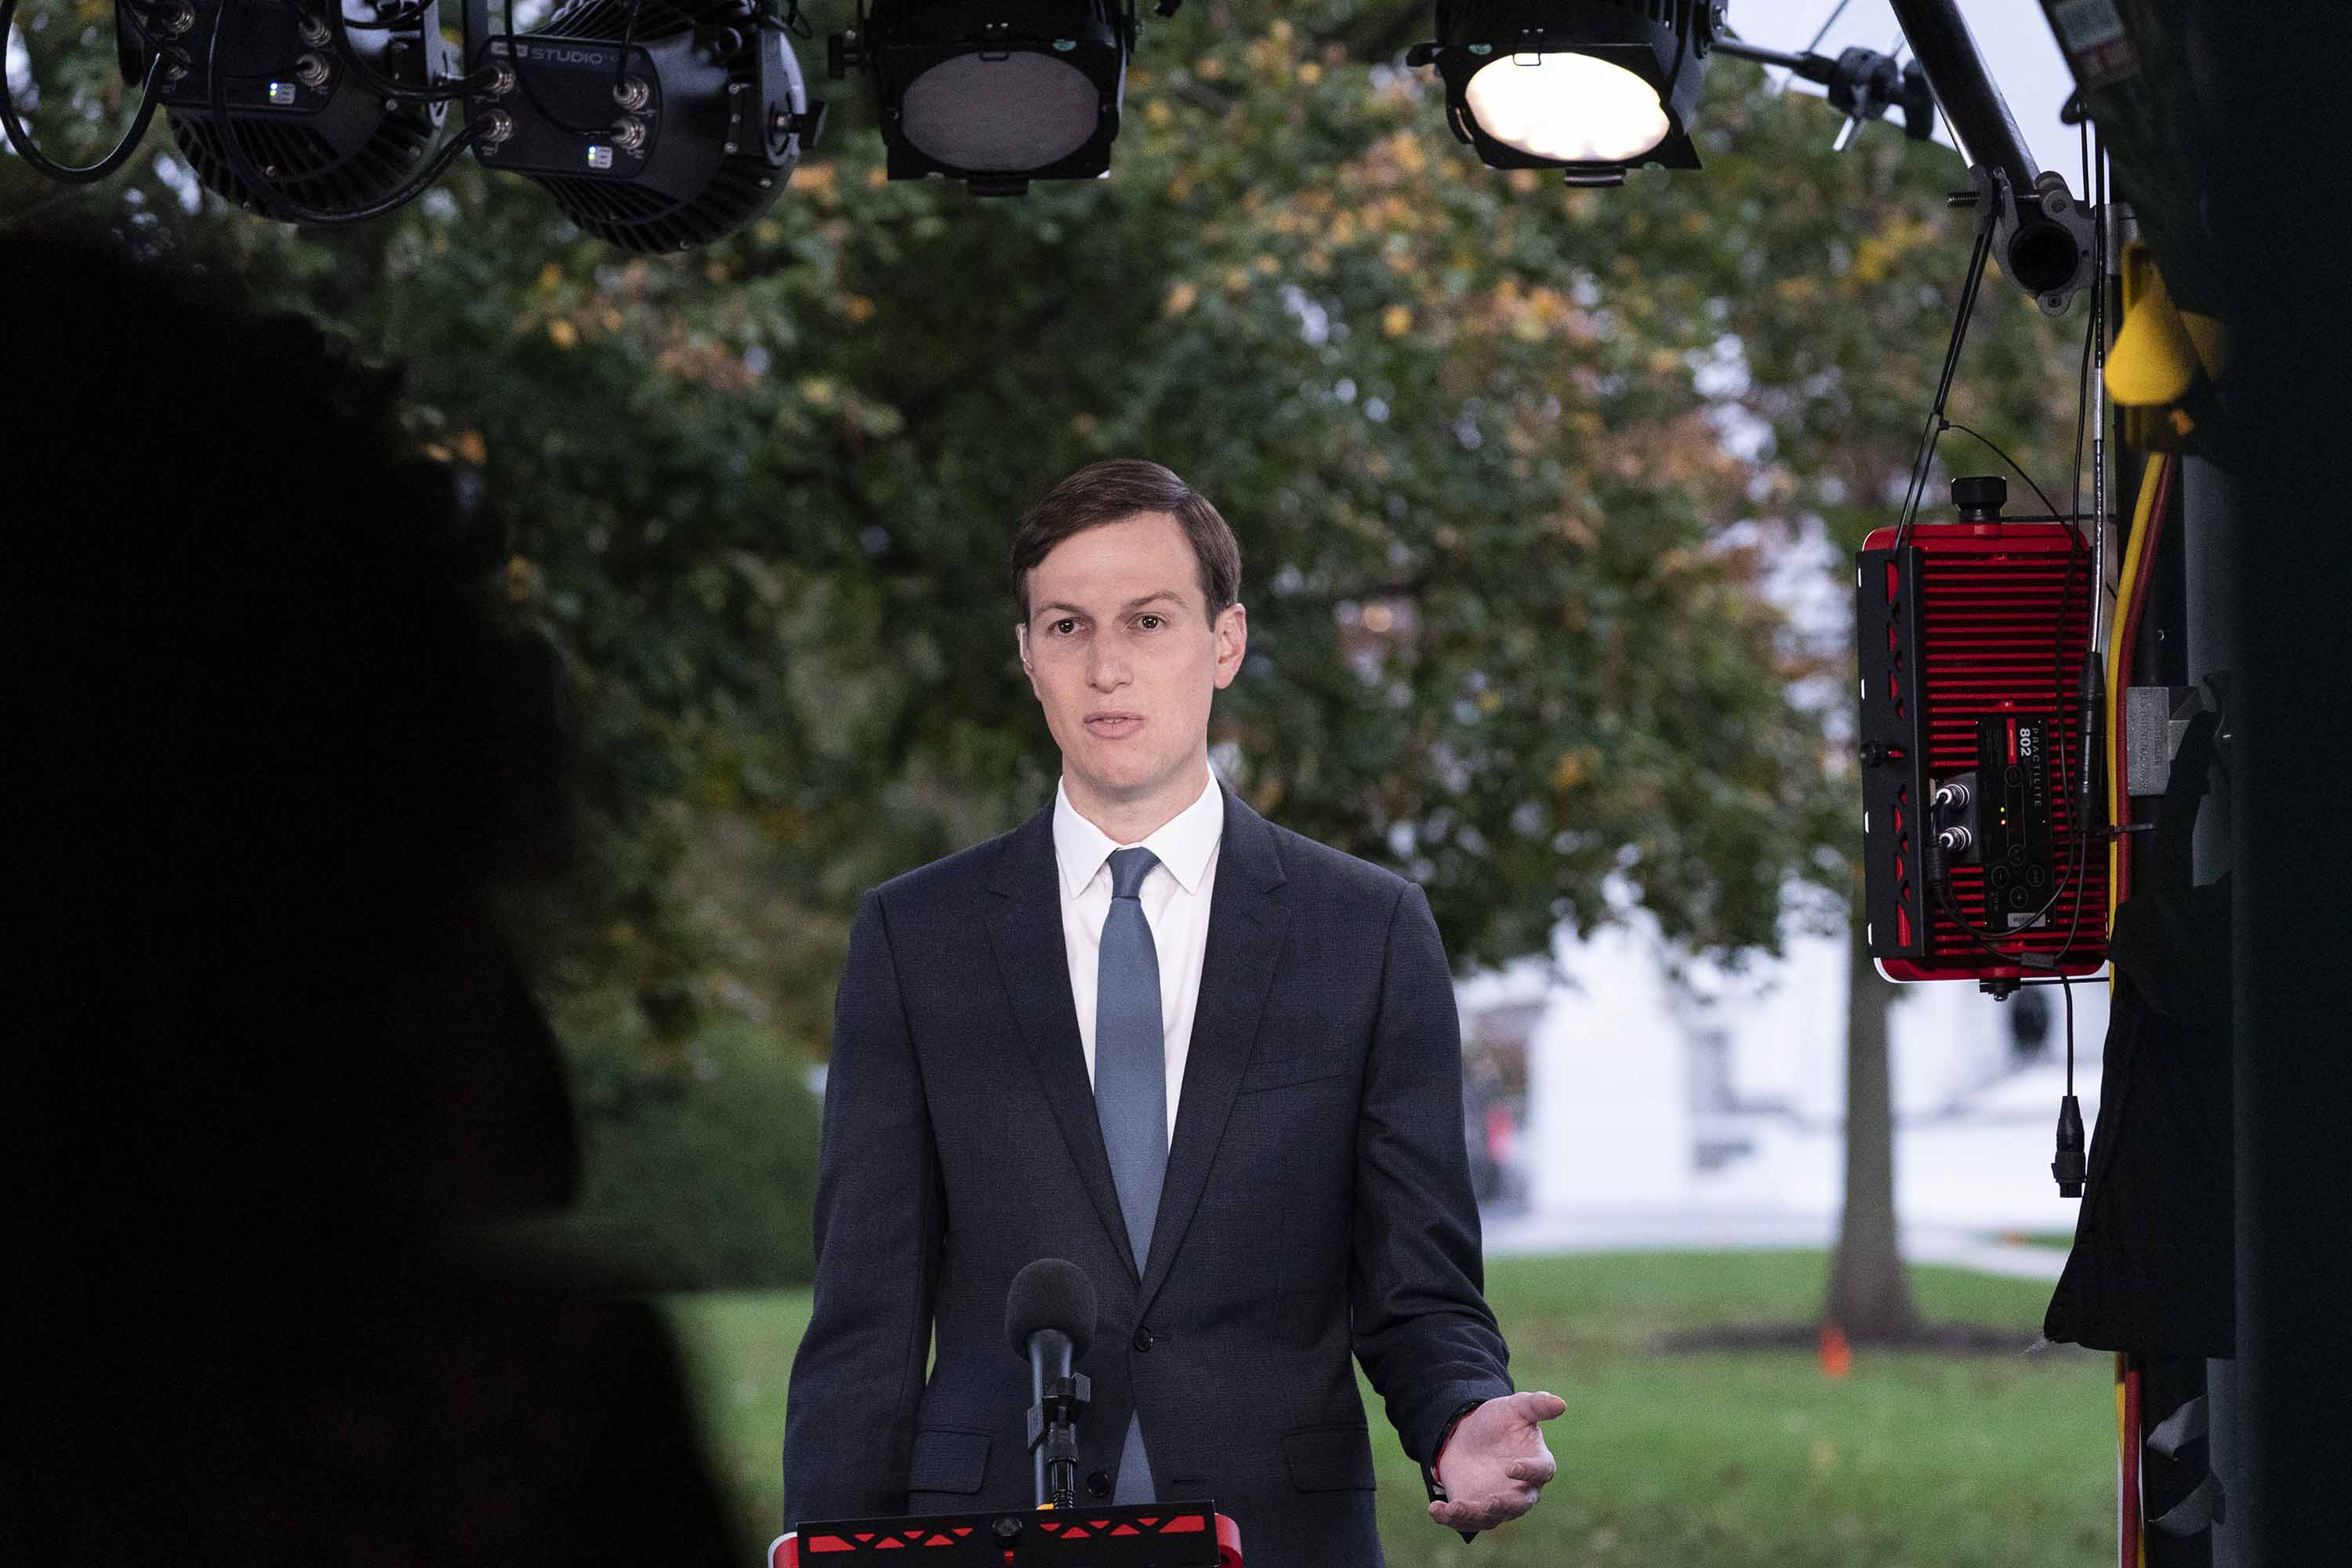 White House senior adviser Jared Kushner takes part in a television interview at the White House, on Monday, October 26.